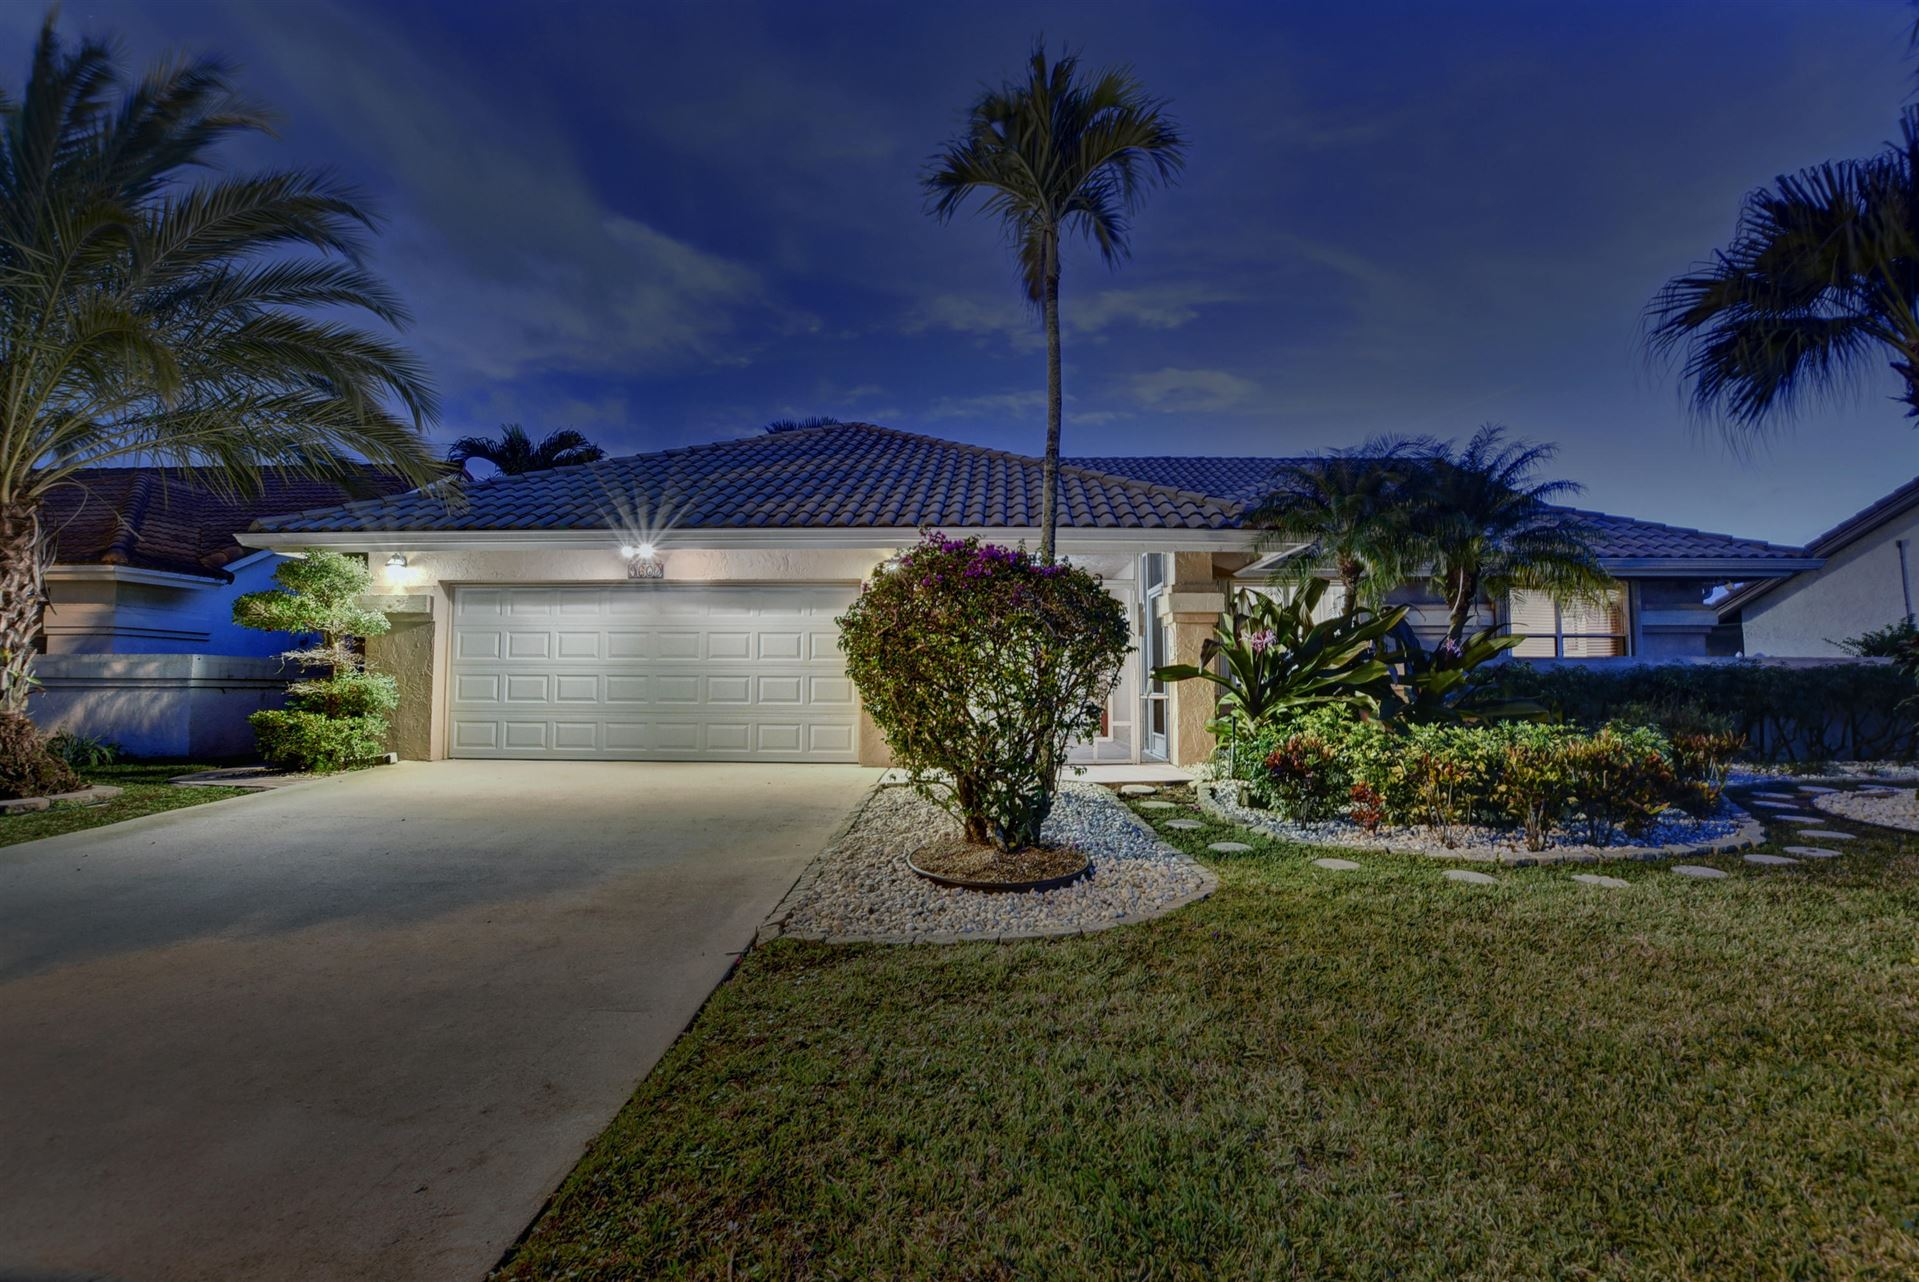 Photo of 9600 Majestic Way, Boynton Beach, FL 33437 (MLS # RX-10687897)